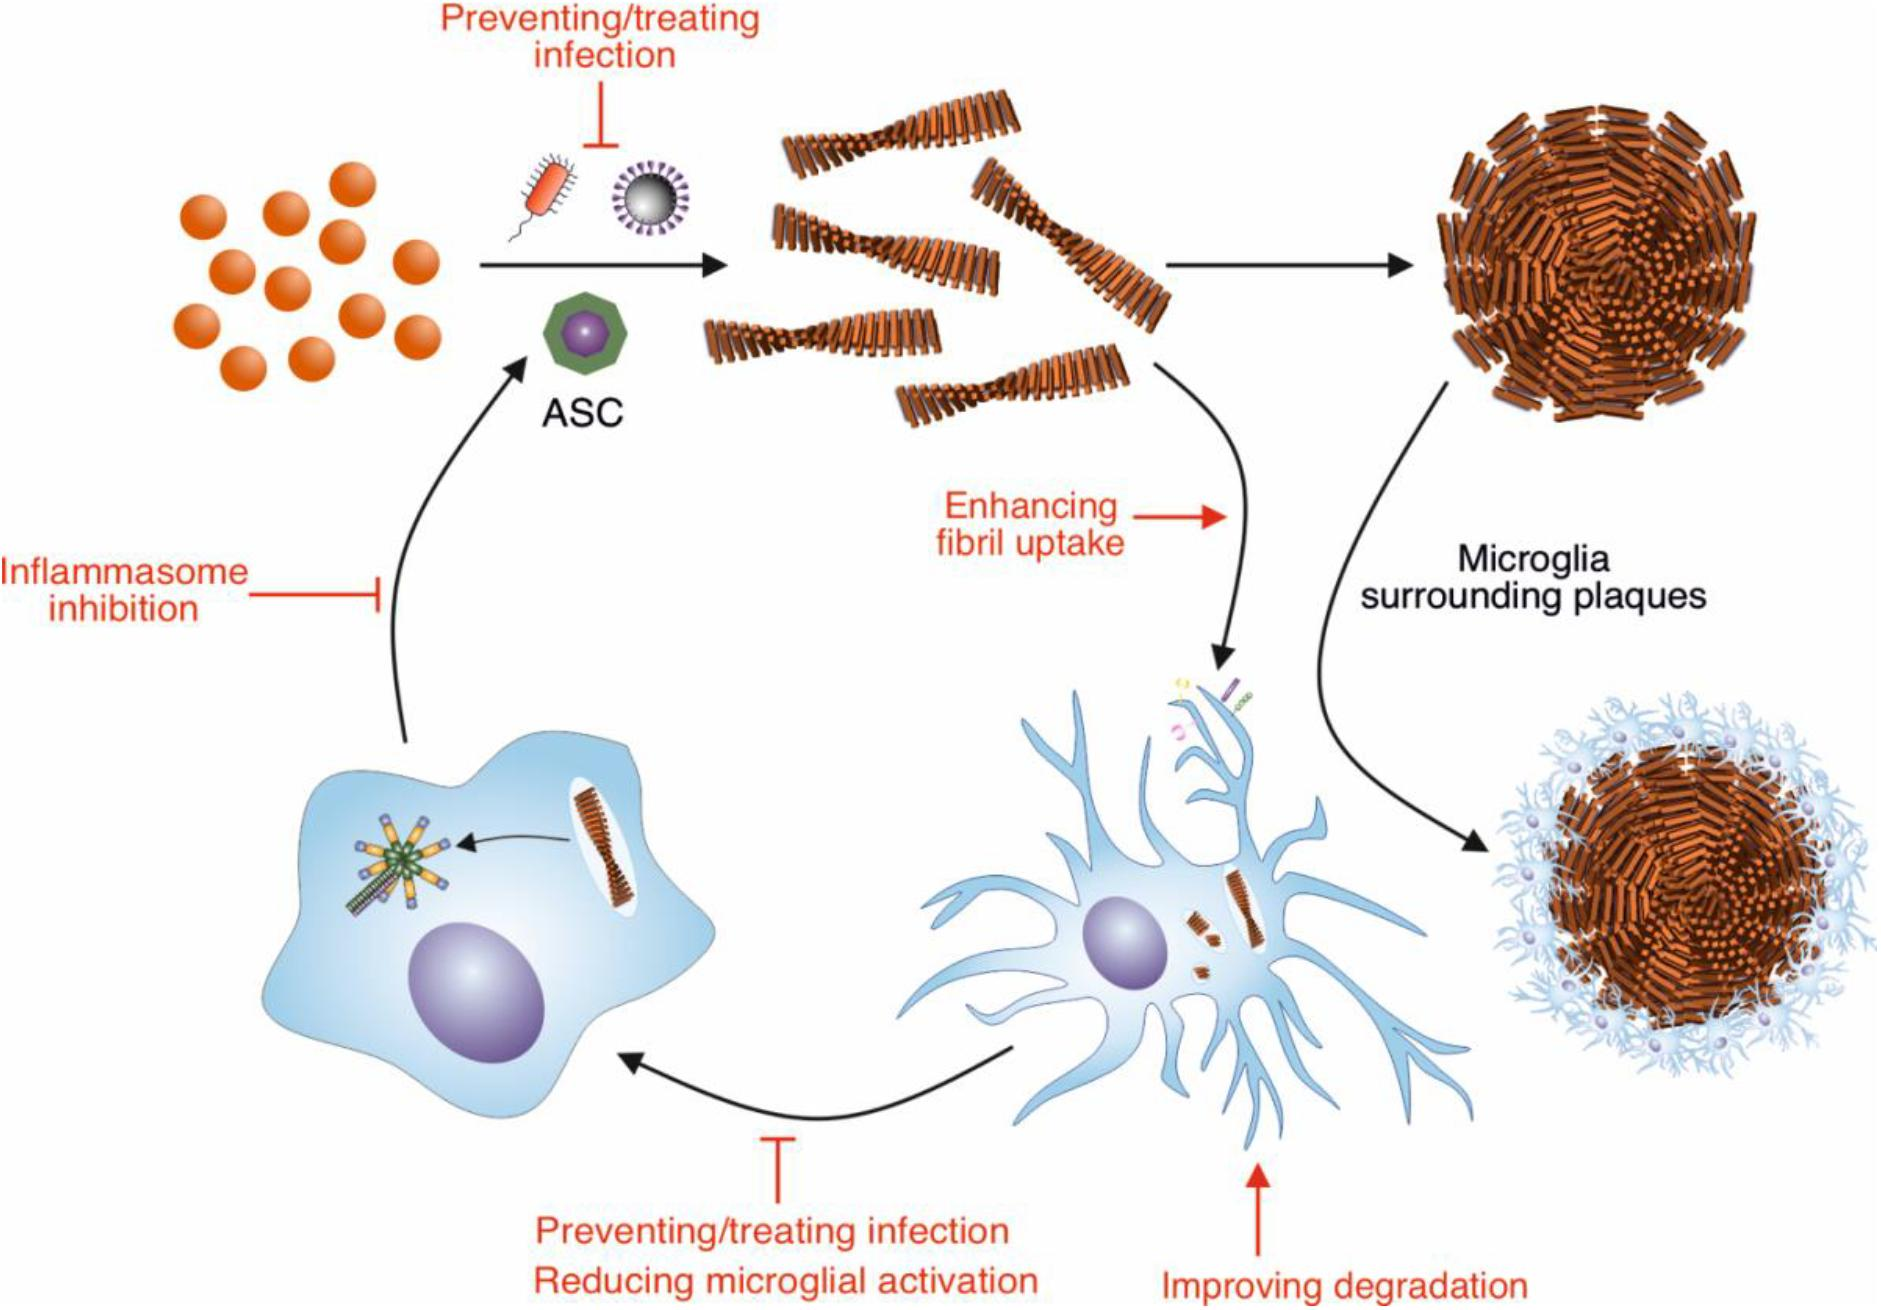 Frontiers Modulation Of B Amyloid Fibril Formation In Alzheimer S Disease By Microglia And Infection Molecular Neuroscience